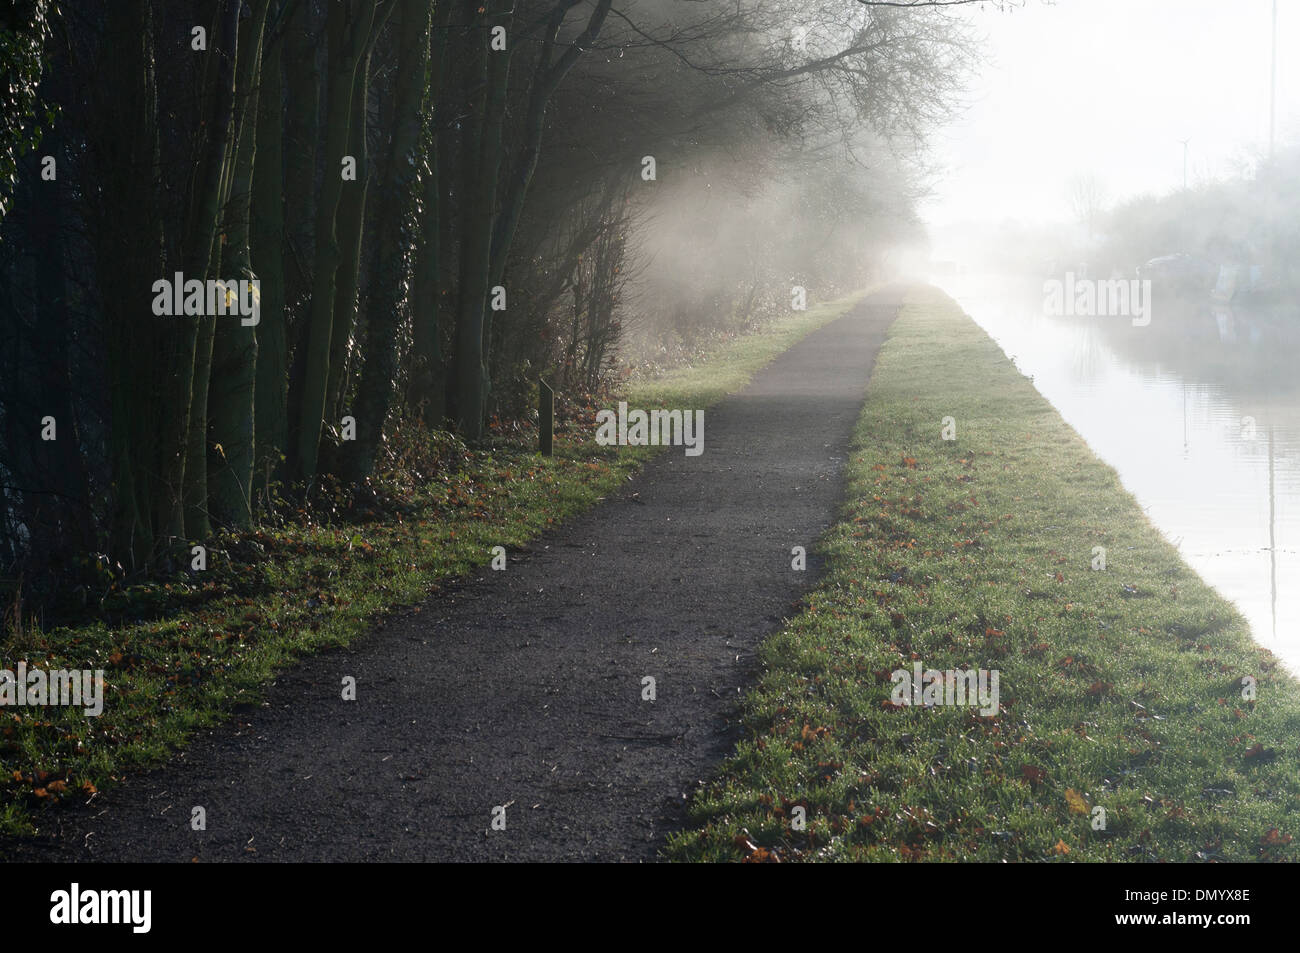 Misty towpath beside the Grand Union Canal in Cosgrove, Northamptonshire - Stock Image